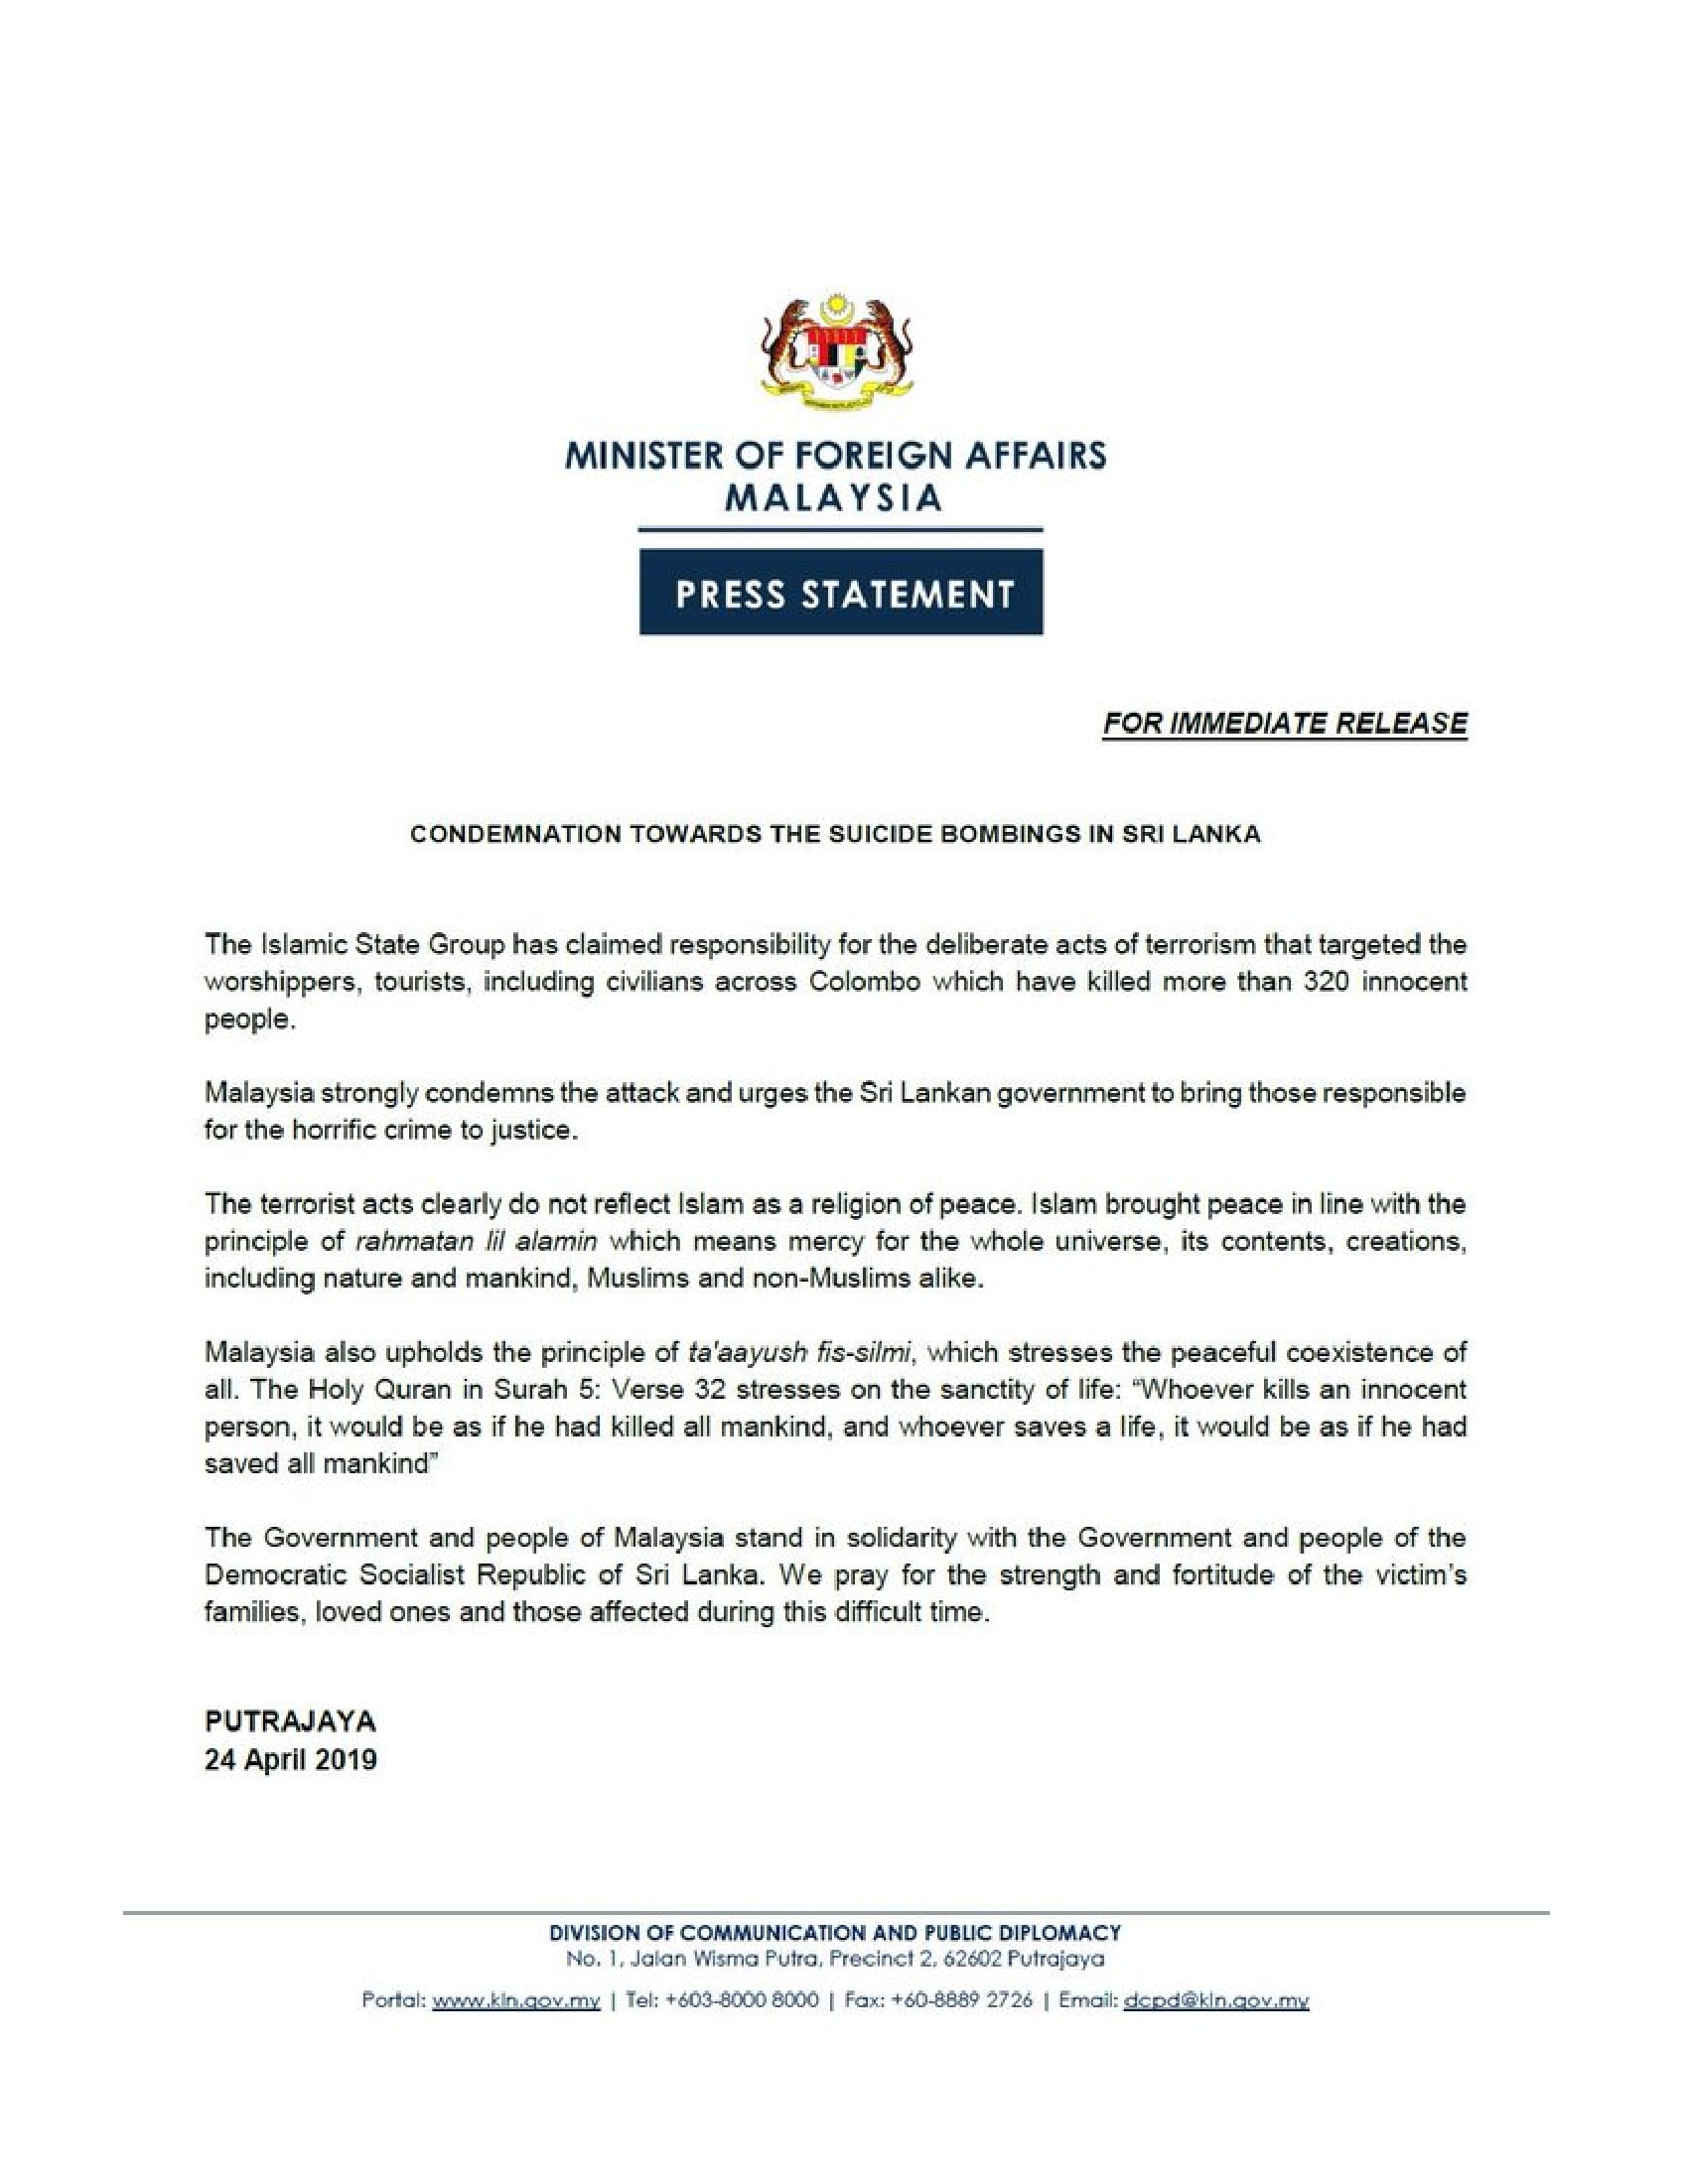 PRESS STATEMENT: Condemnation towards the Suicide Bombings